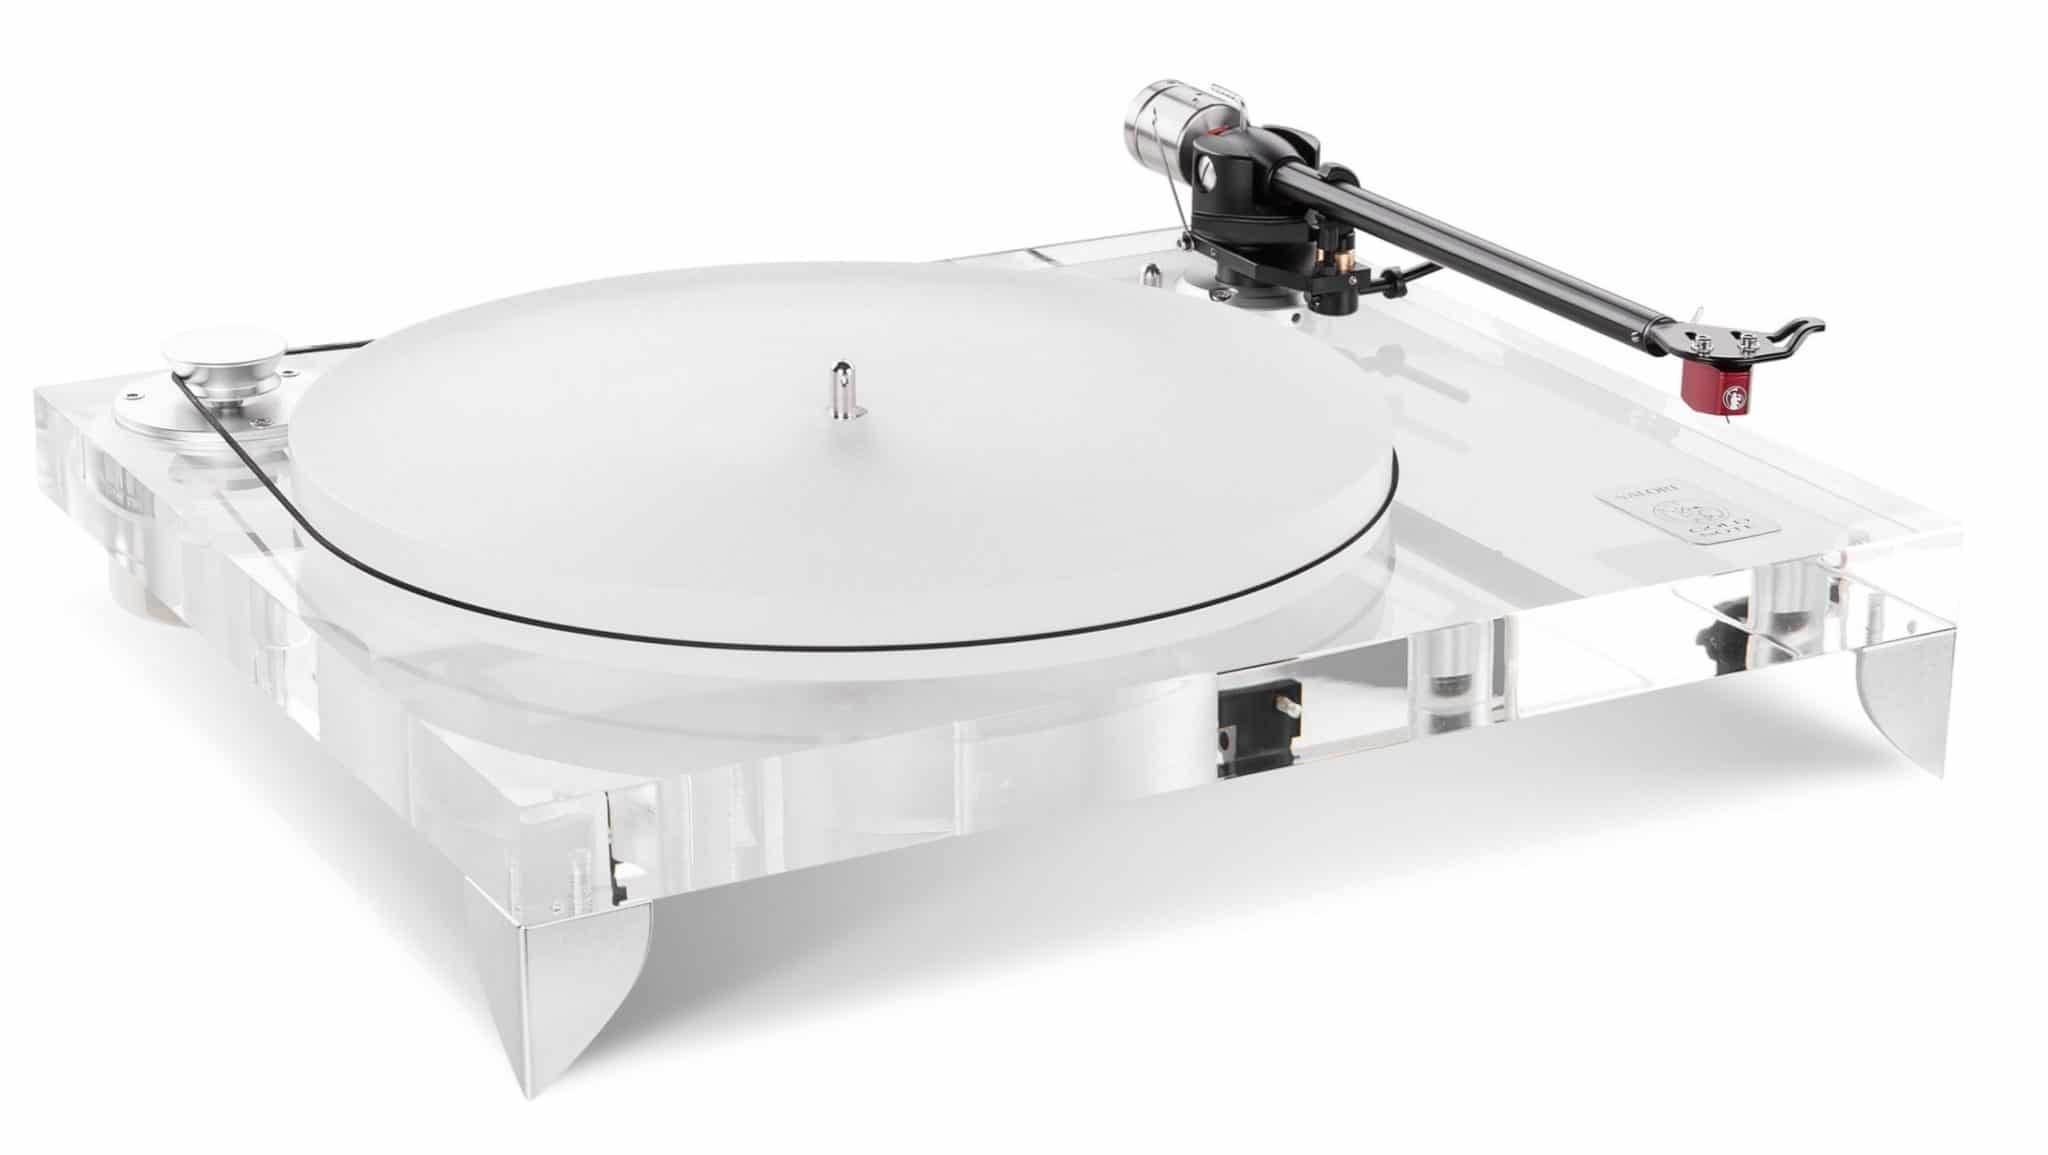 Valore 425 Turntable Plus From Gold Note